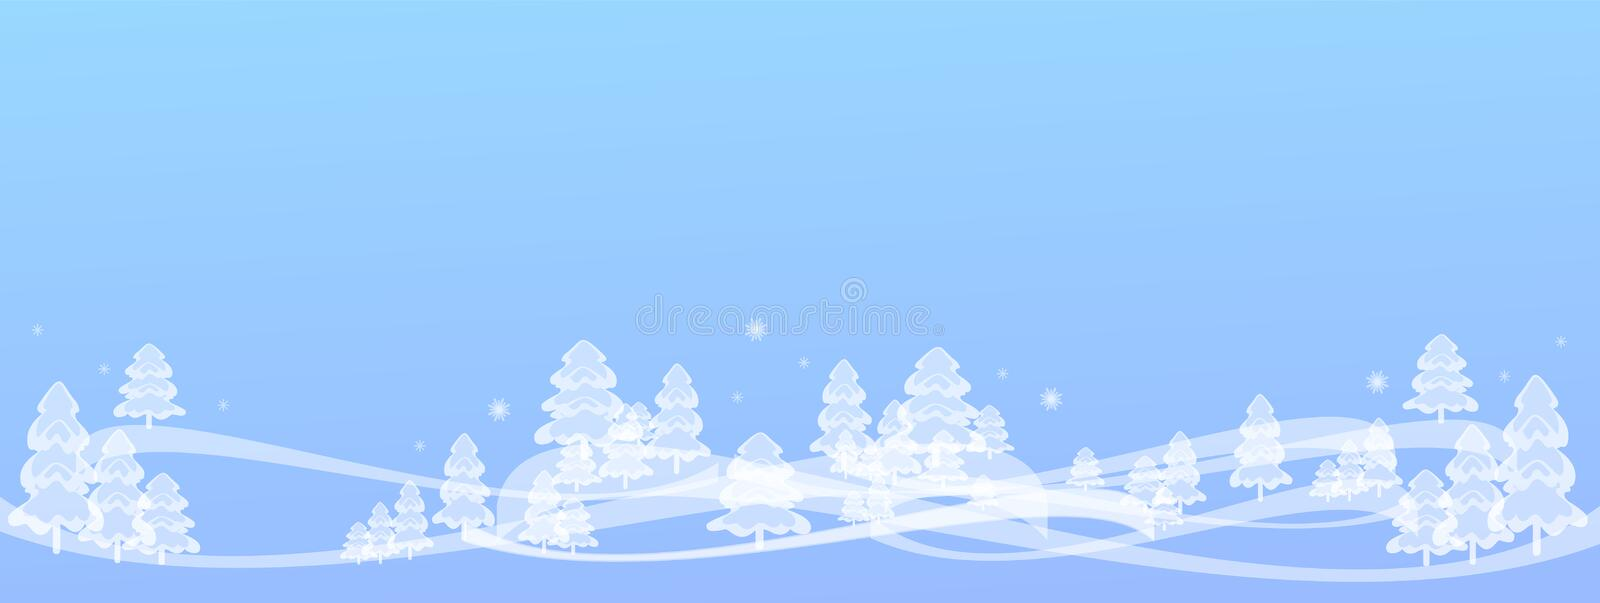 Winter illustration background light blue, snowy fairy forest & snowflakes, light, transparent like ice or glass. Very beautiful winter background, light royalty free illustration